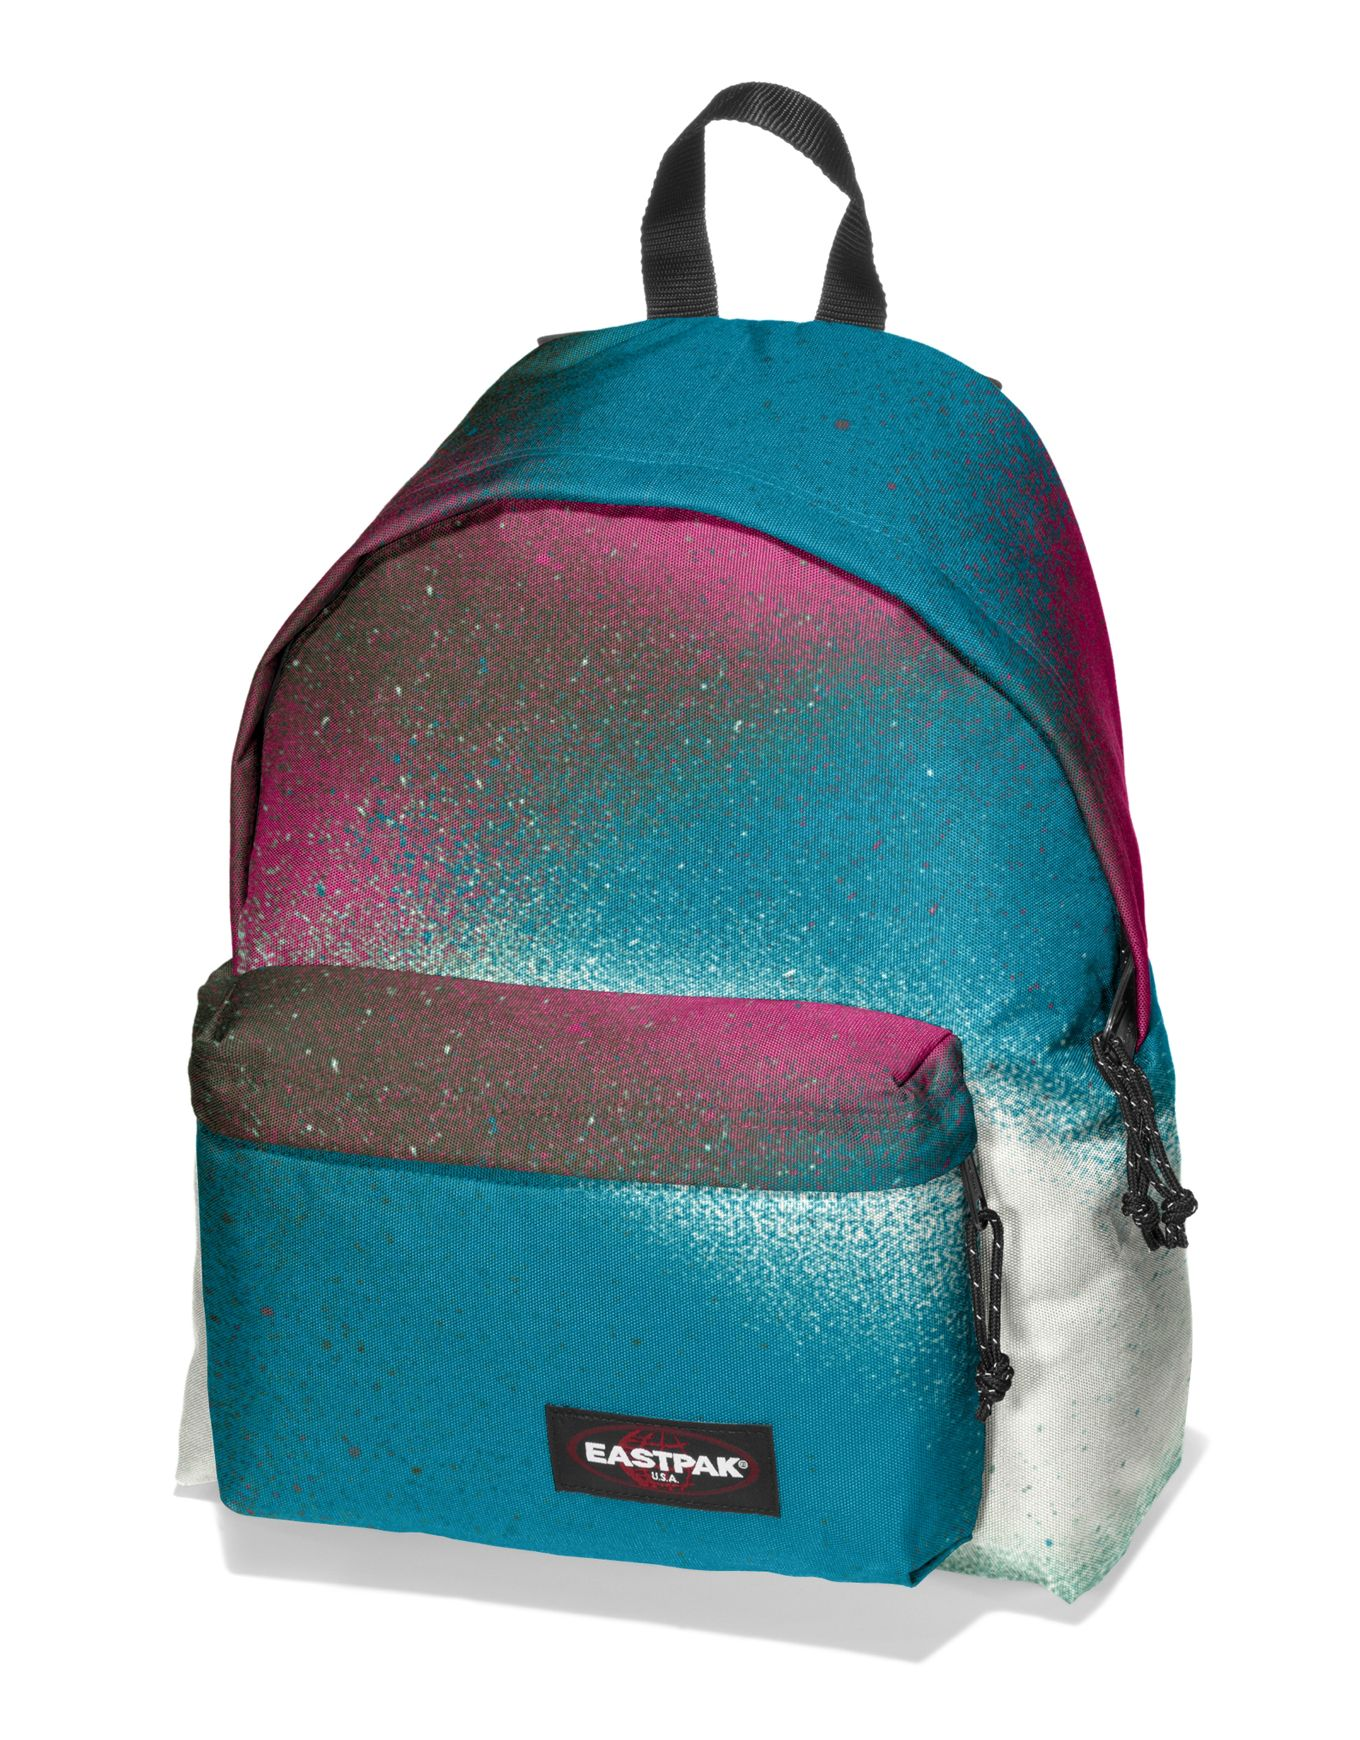 Thumbnail of Eastpak Padded Pakr Backpack Bright Drizzle